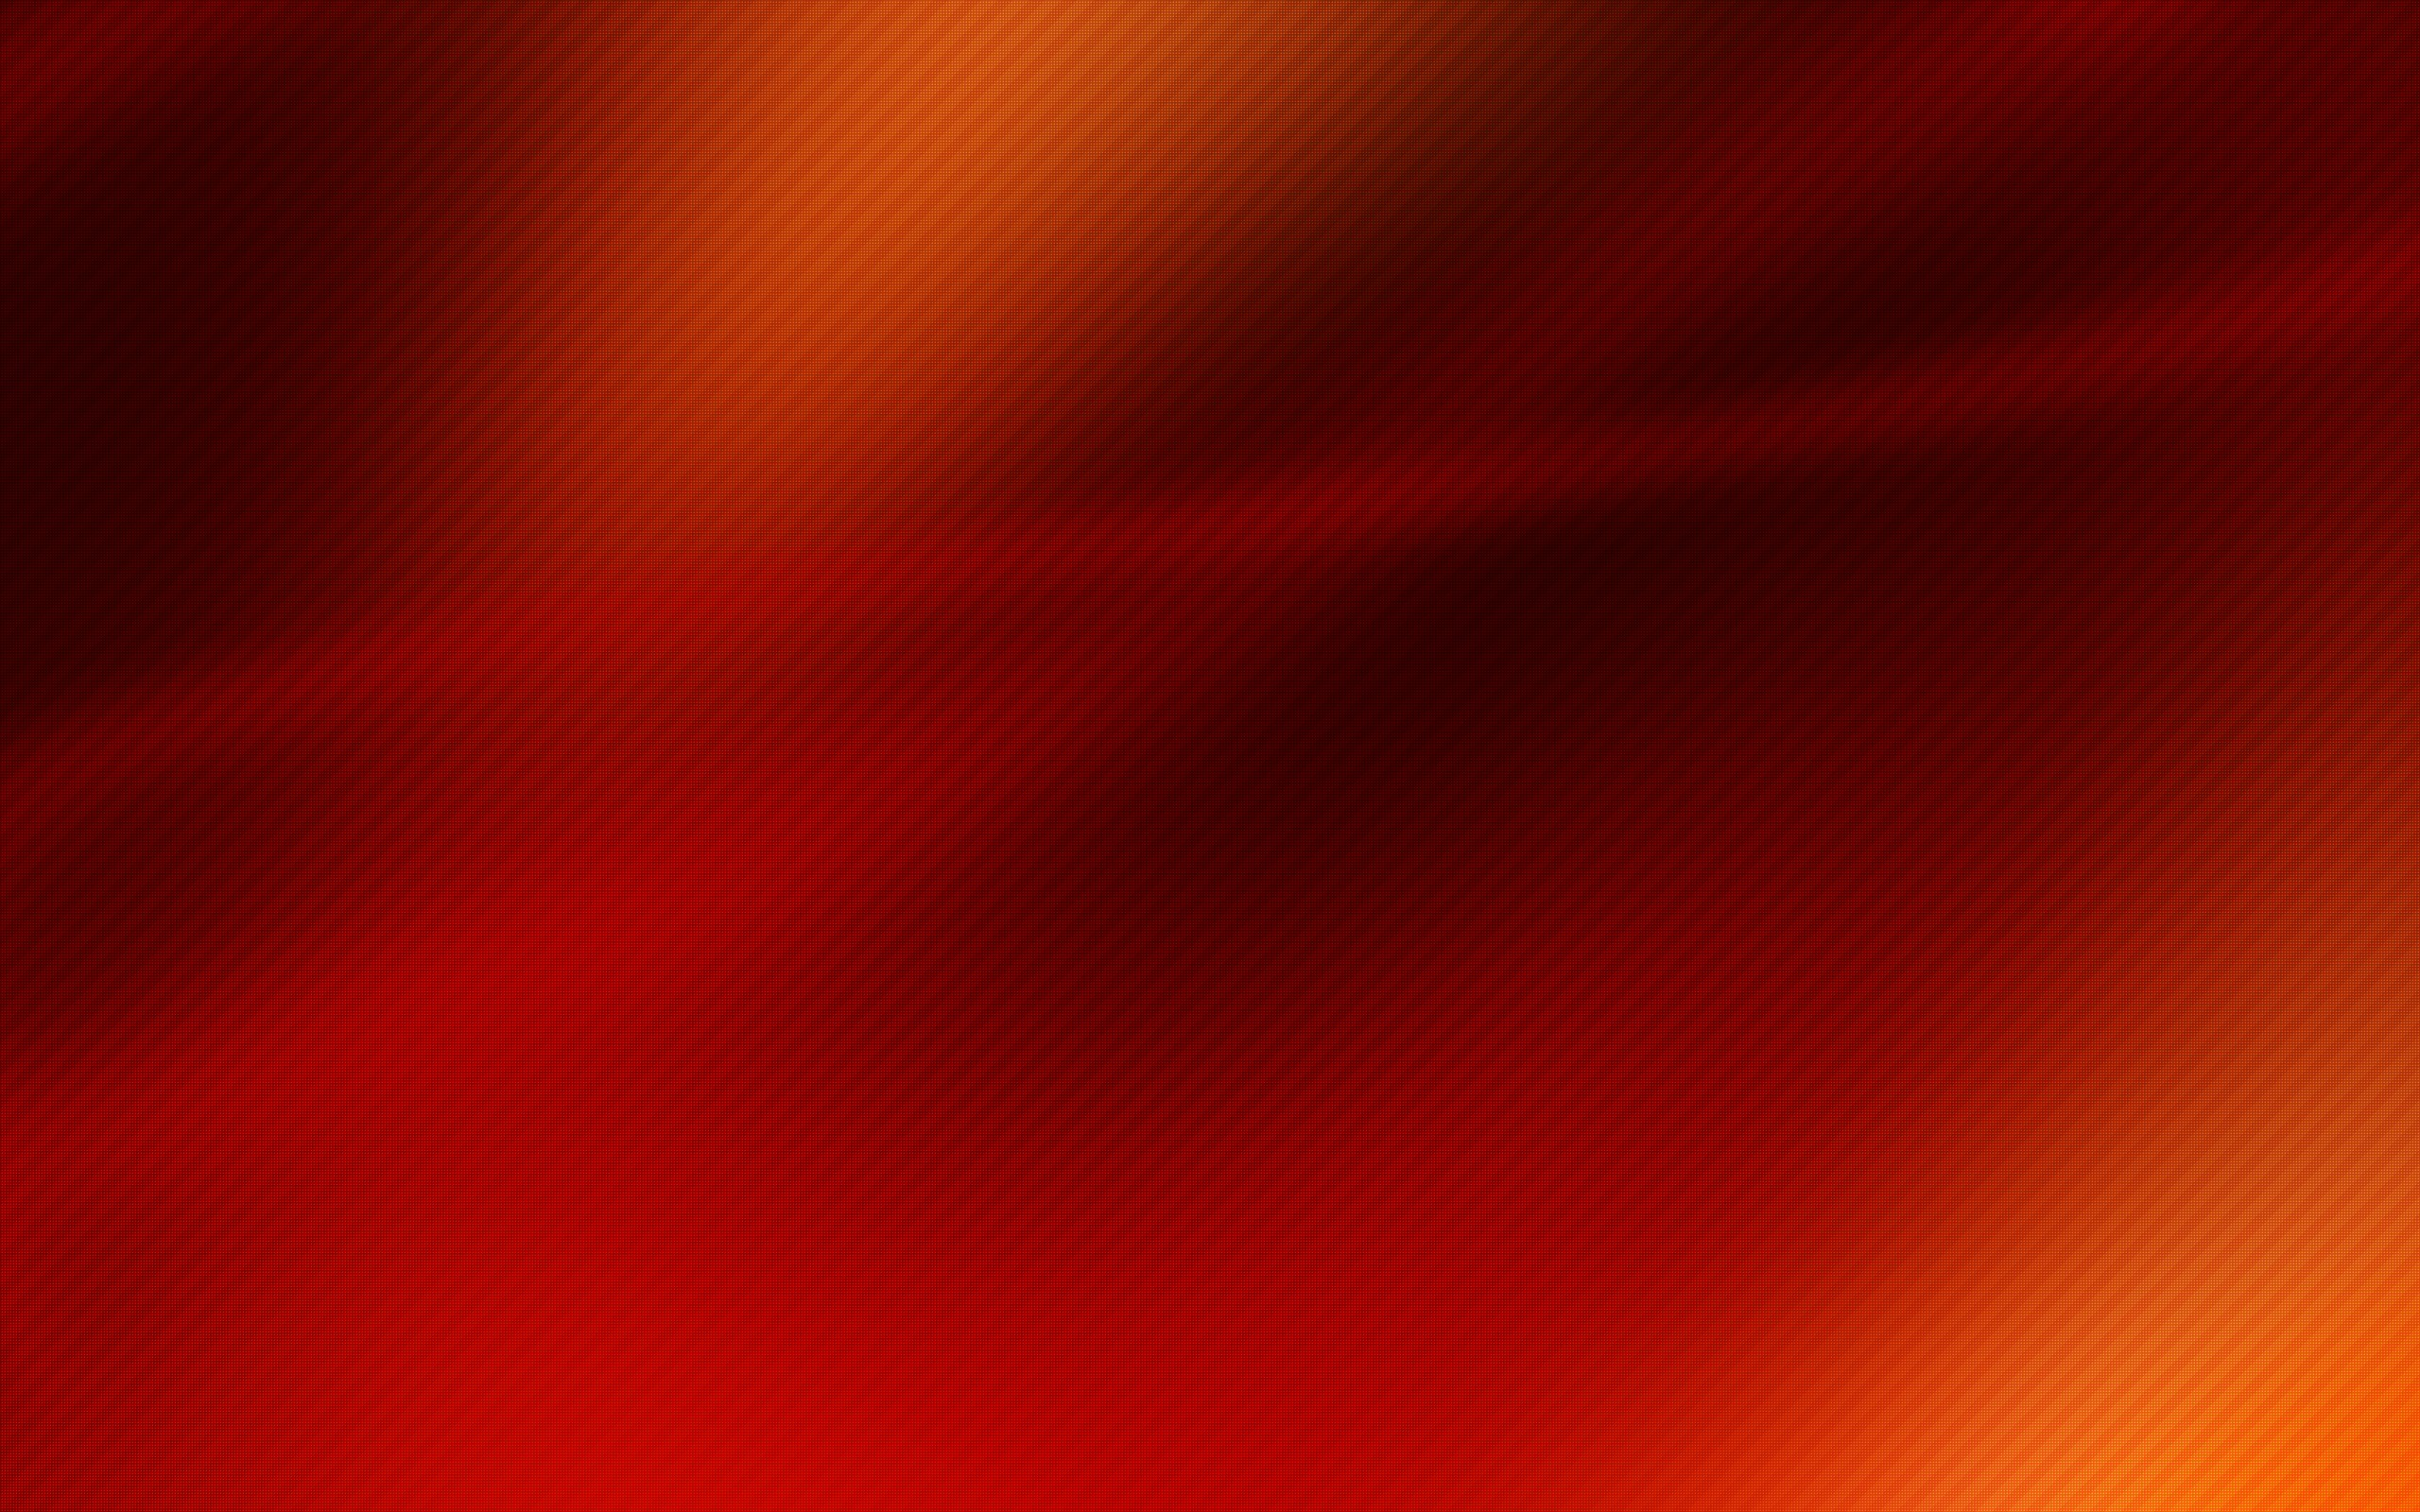 Red background HD ·① Download free beautiful full HD ...